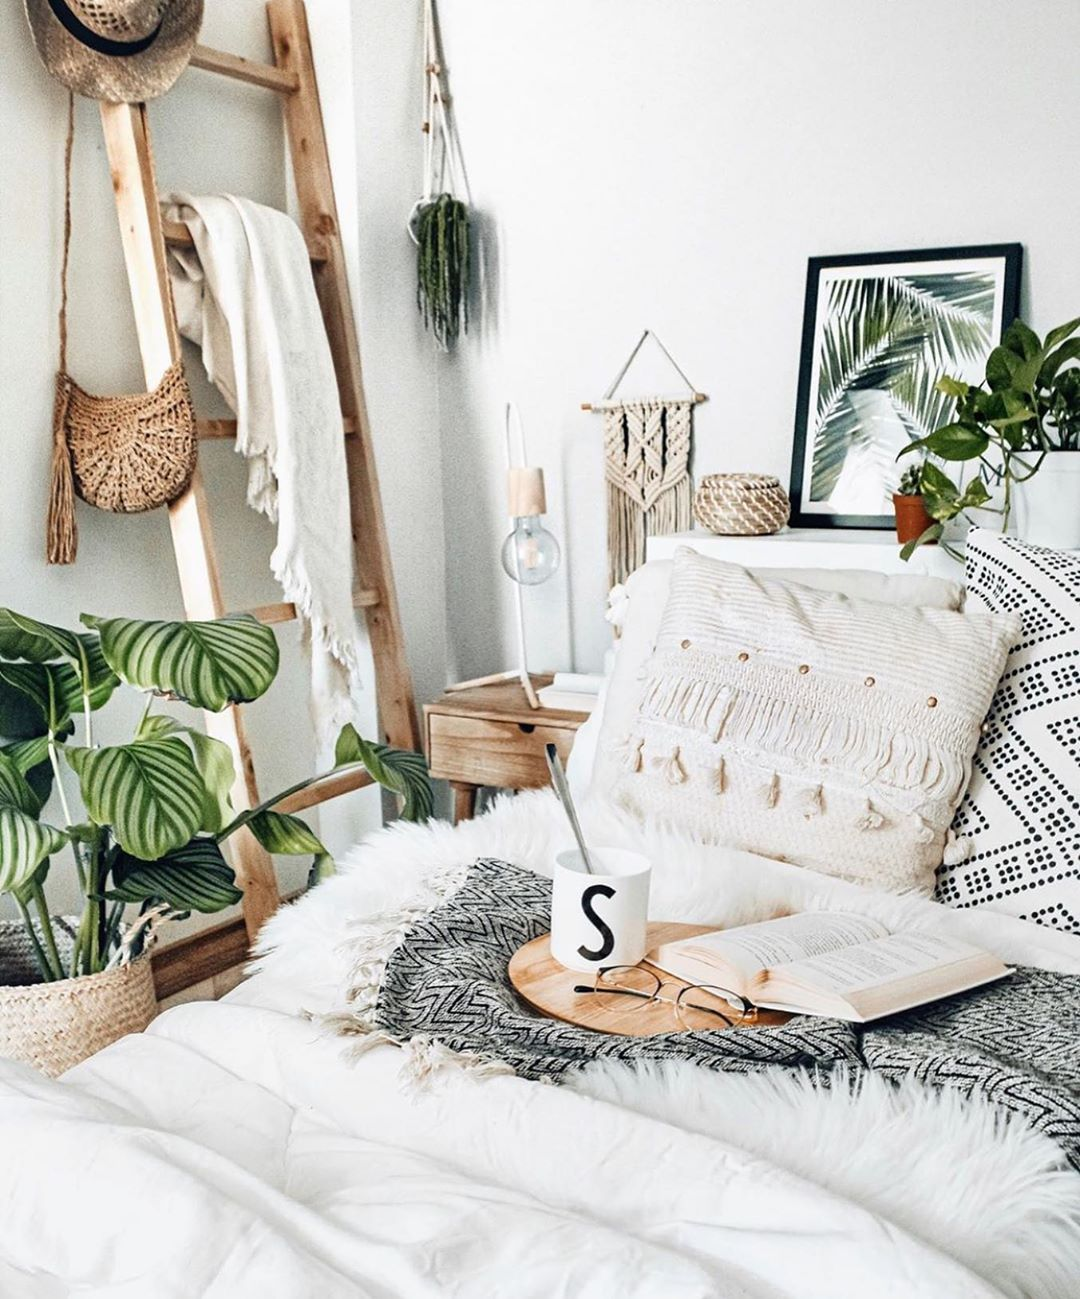 Bedroom Decor Ideas Plant Gang Plant Family Plant Display Cute Pots For Plants Green Foliage Pla Bedroom Decor Kids Bedroom Decor Scandinavian Interior Bedroom